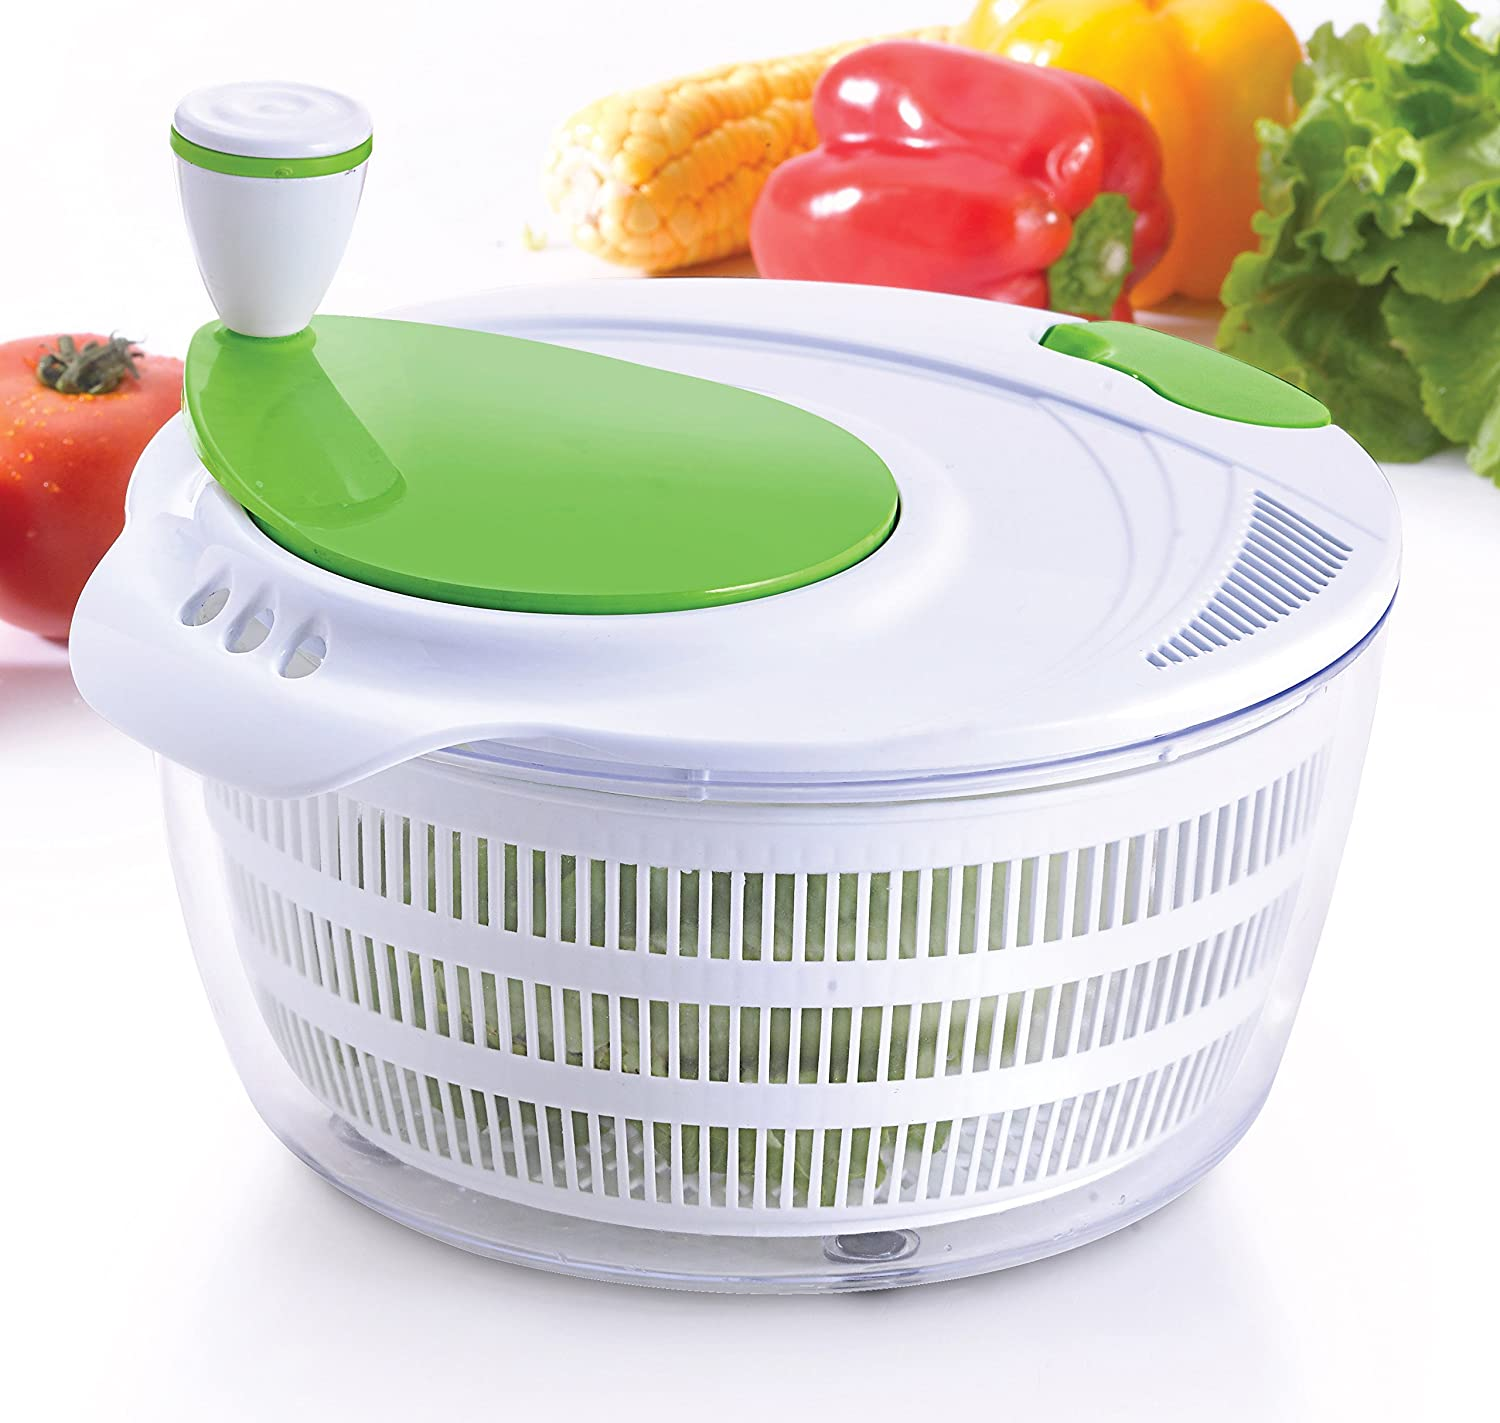 KUUK Salad Spinner - Dry Salad, Vegetables, Pasta